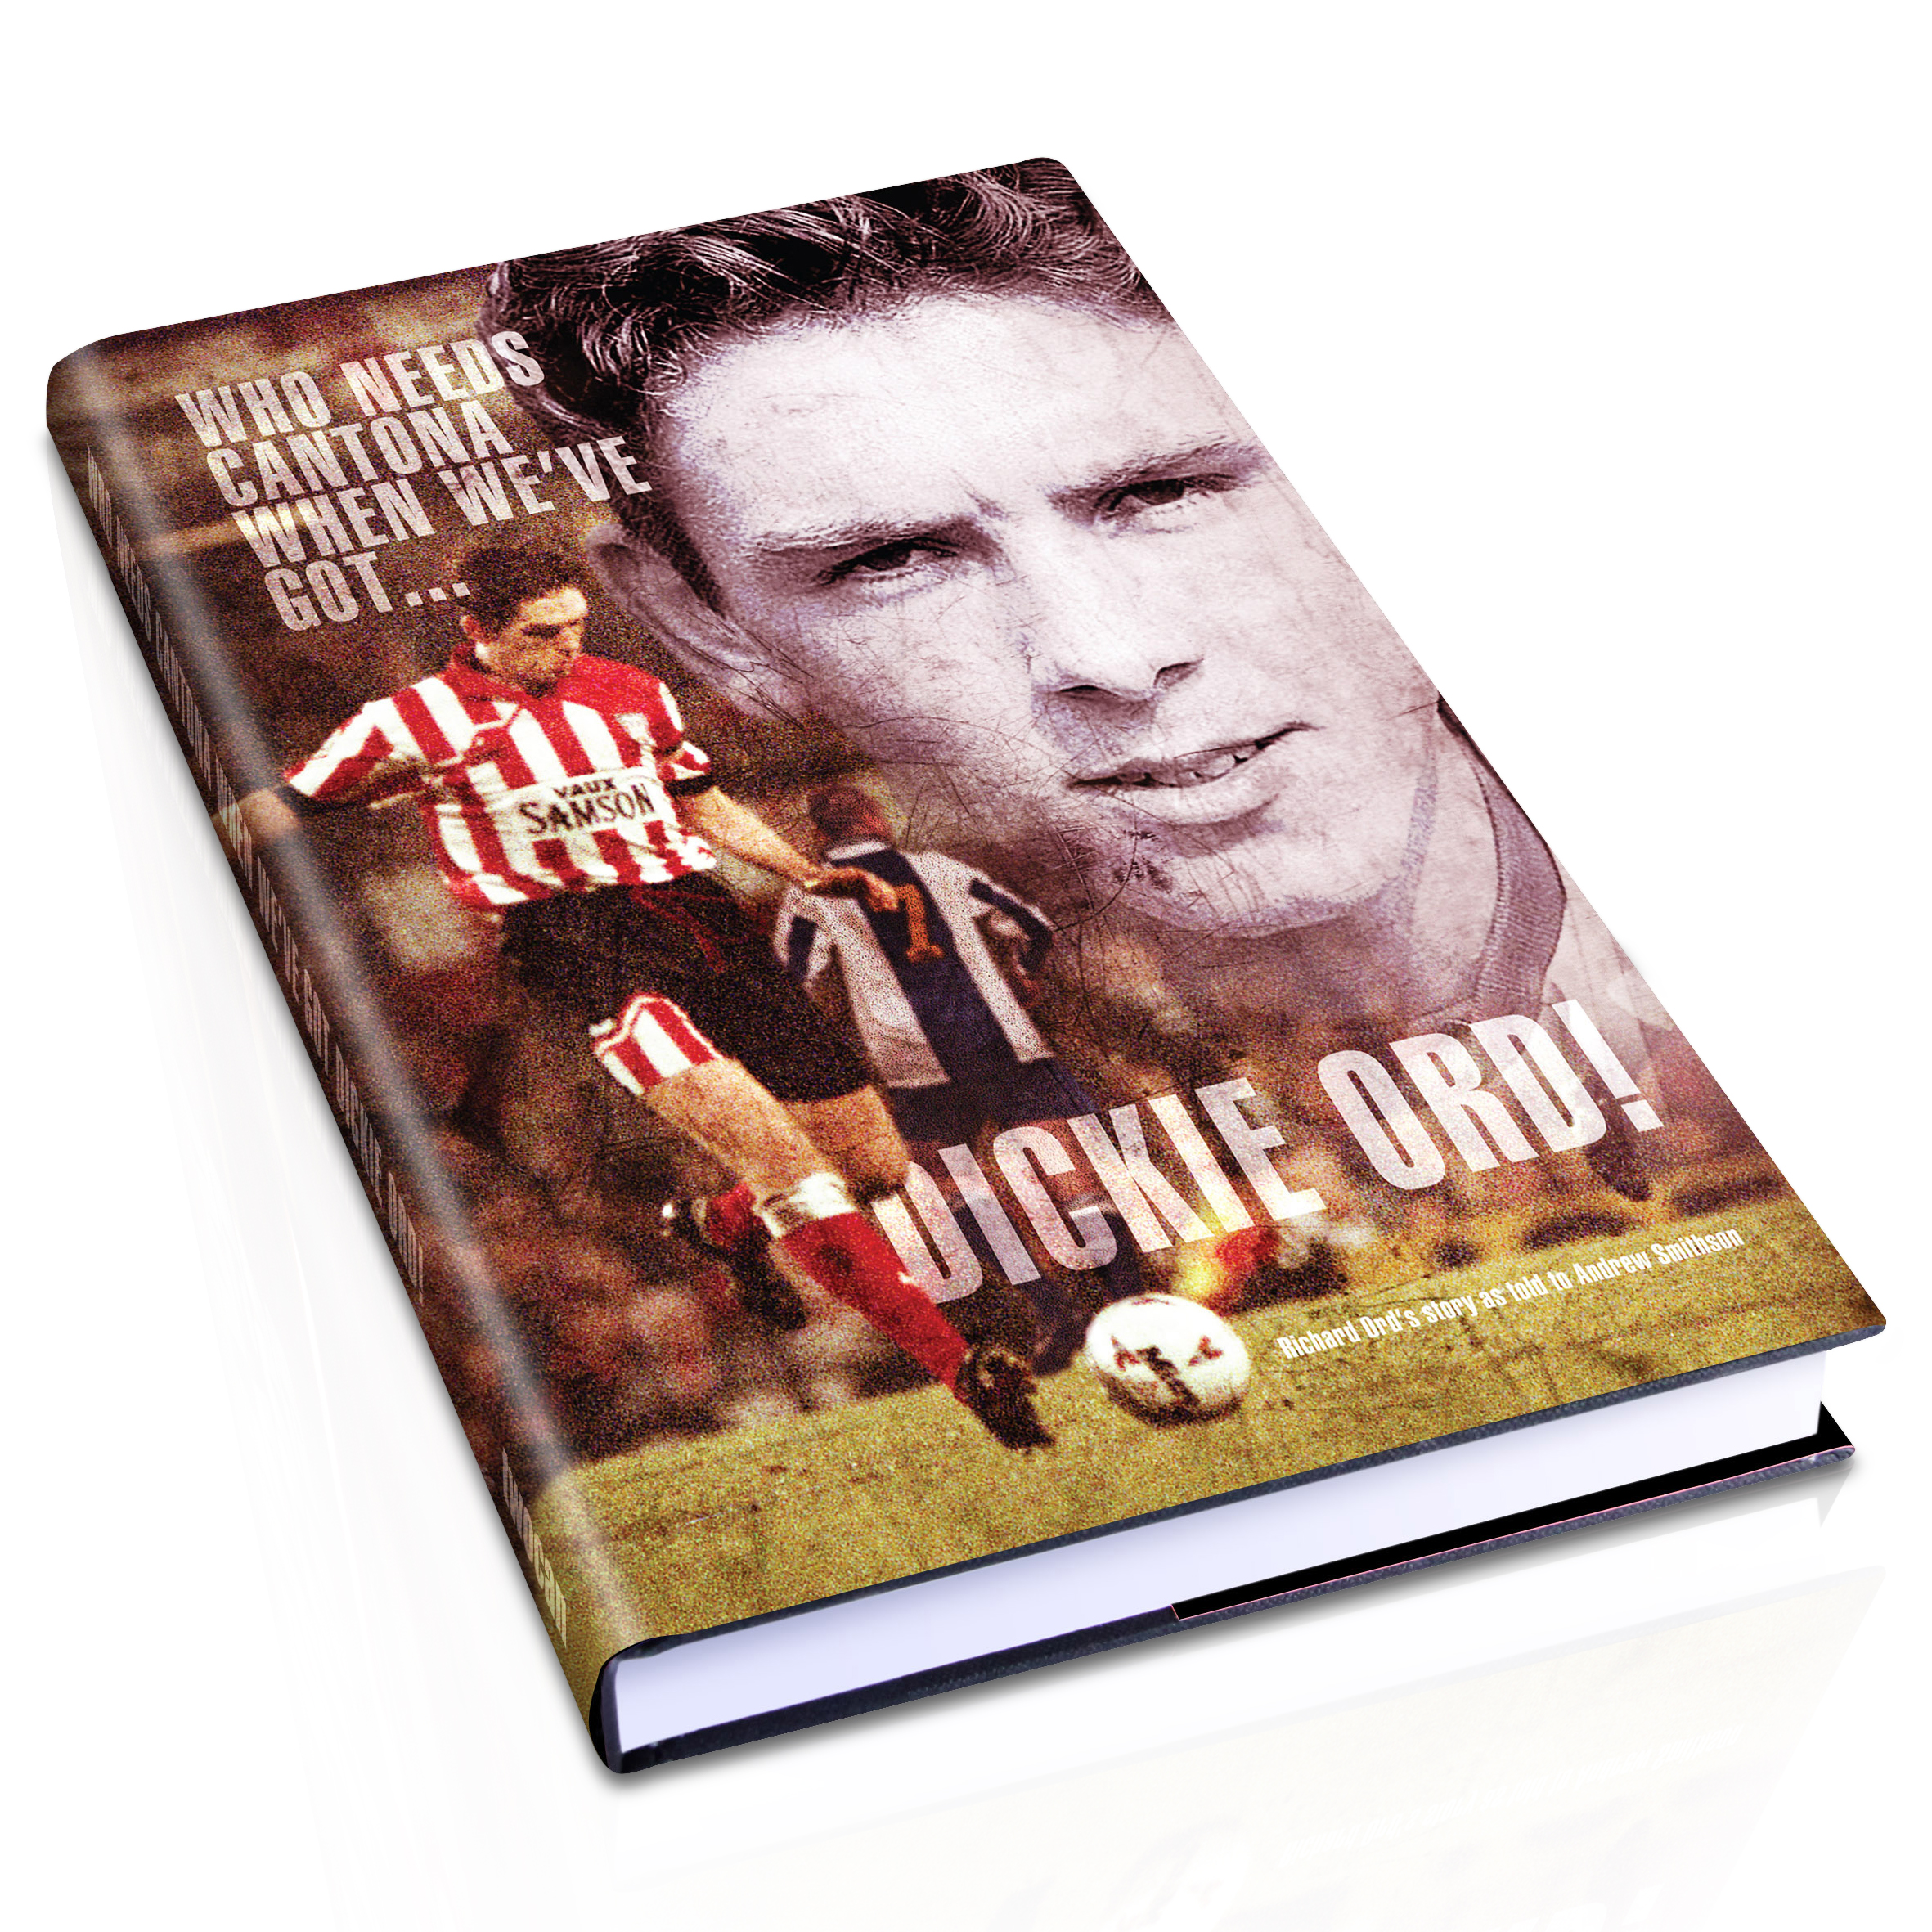 Sunderland Who Needs Cantona When We've Got Dickie Ord Hardback Book